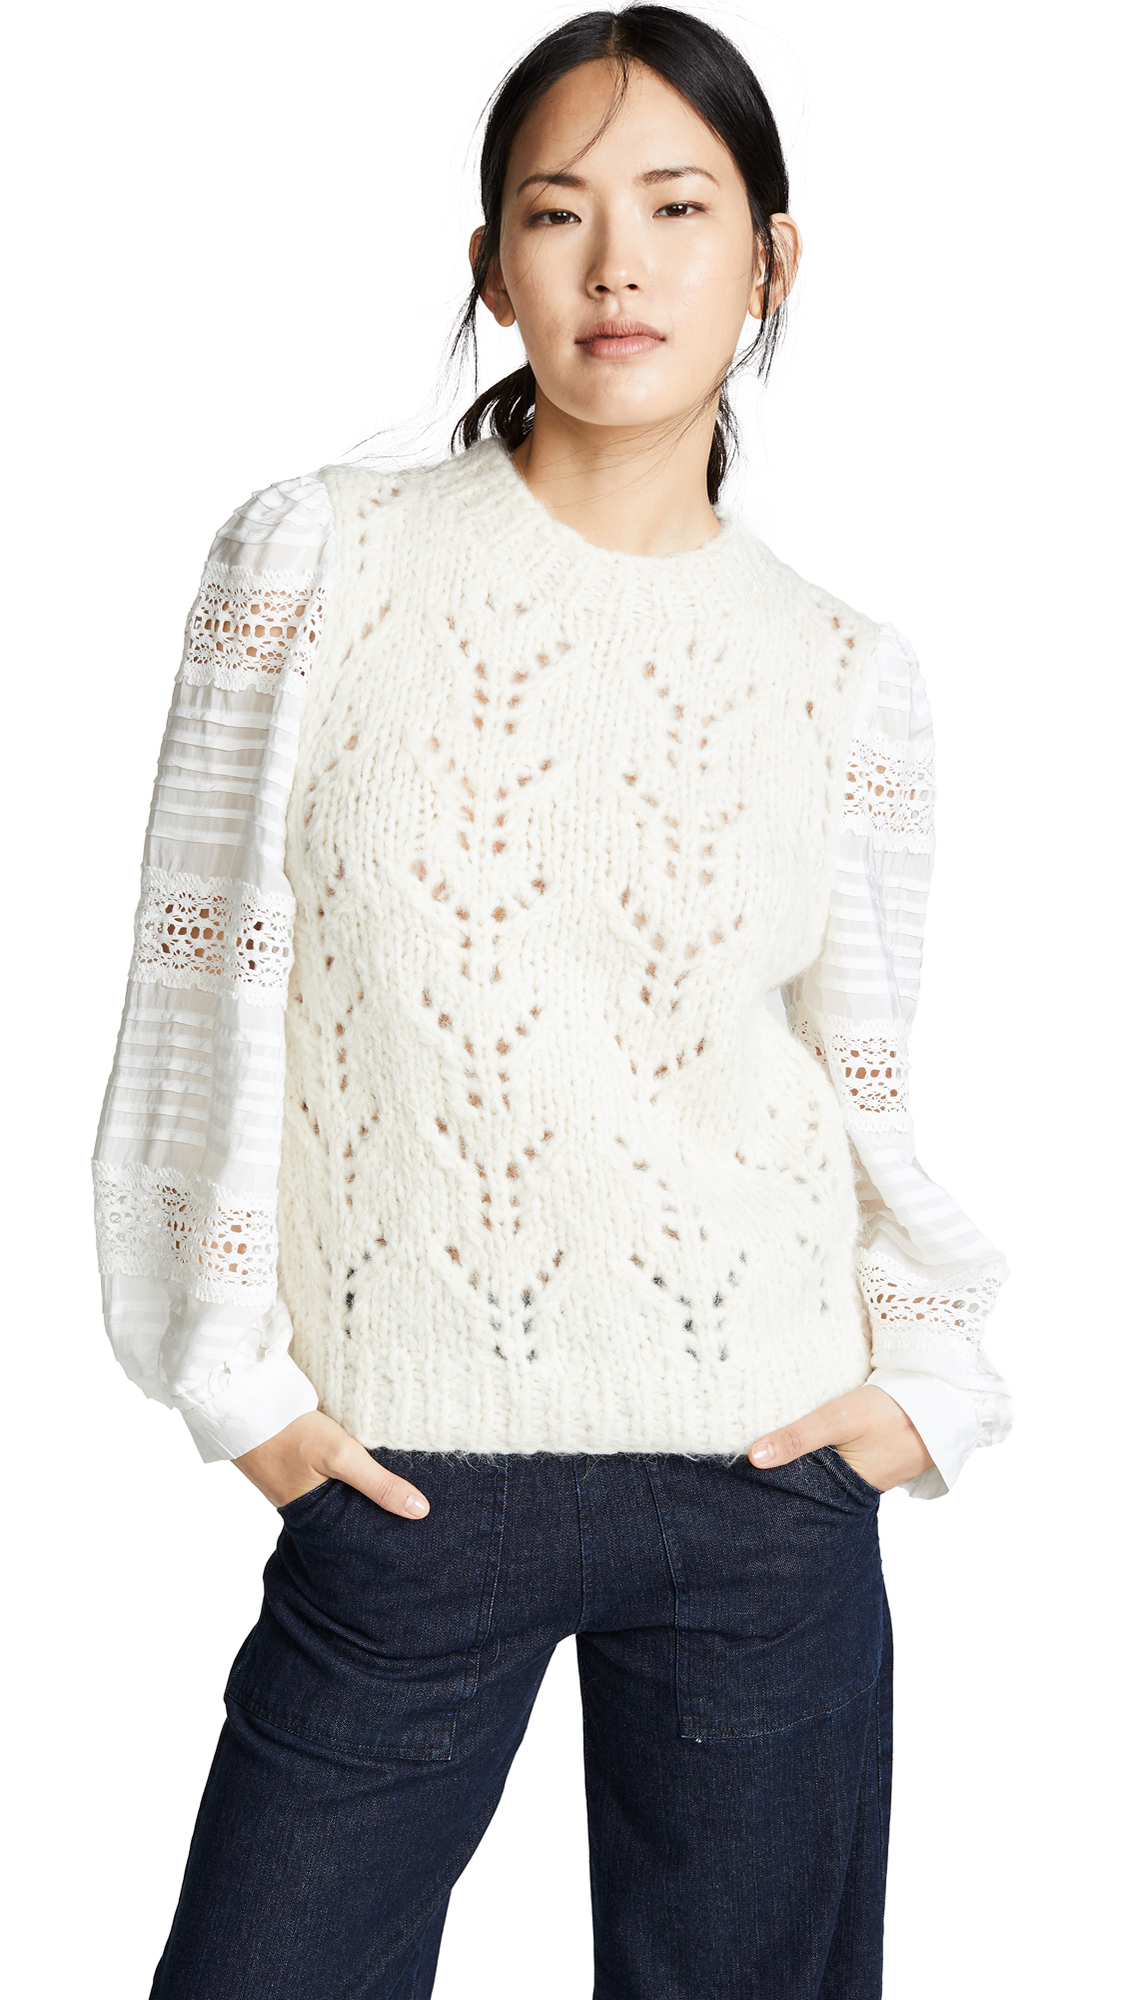 Sea Ellie Lace Combo Sweater In Cream